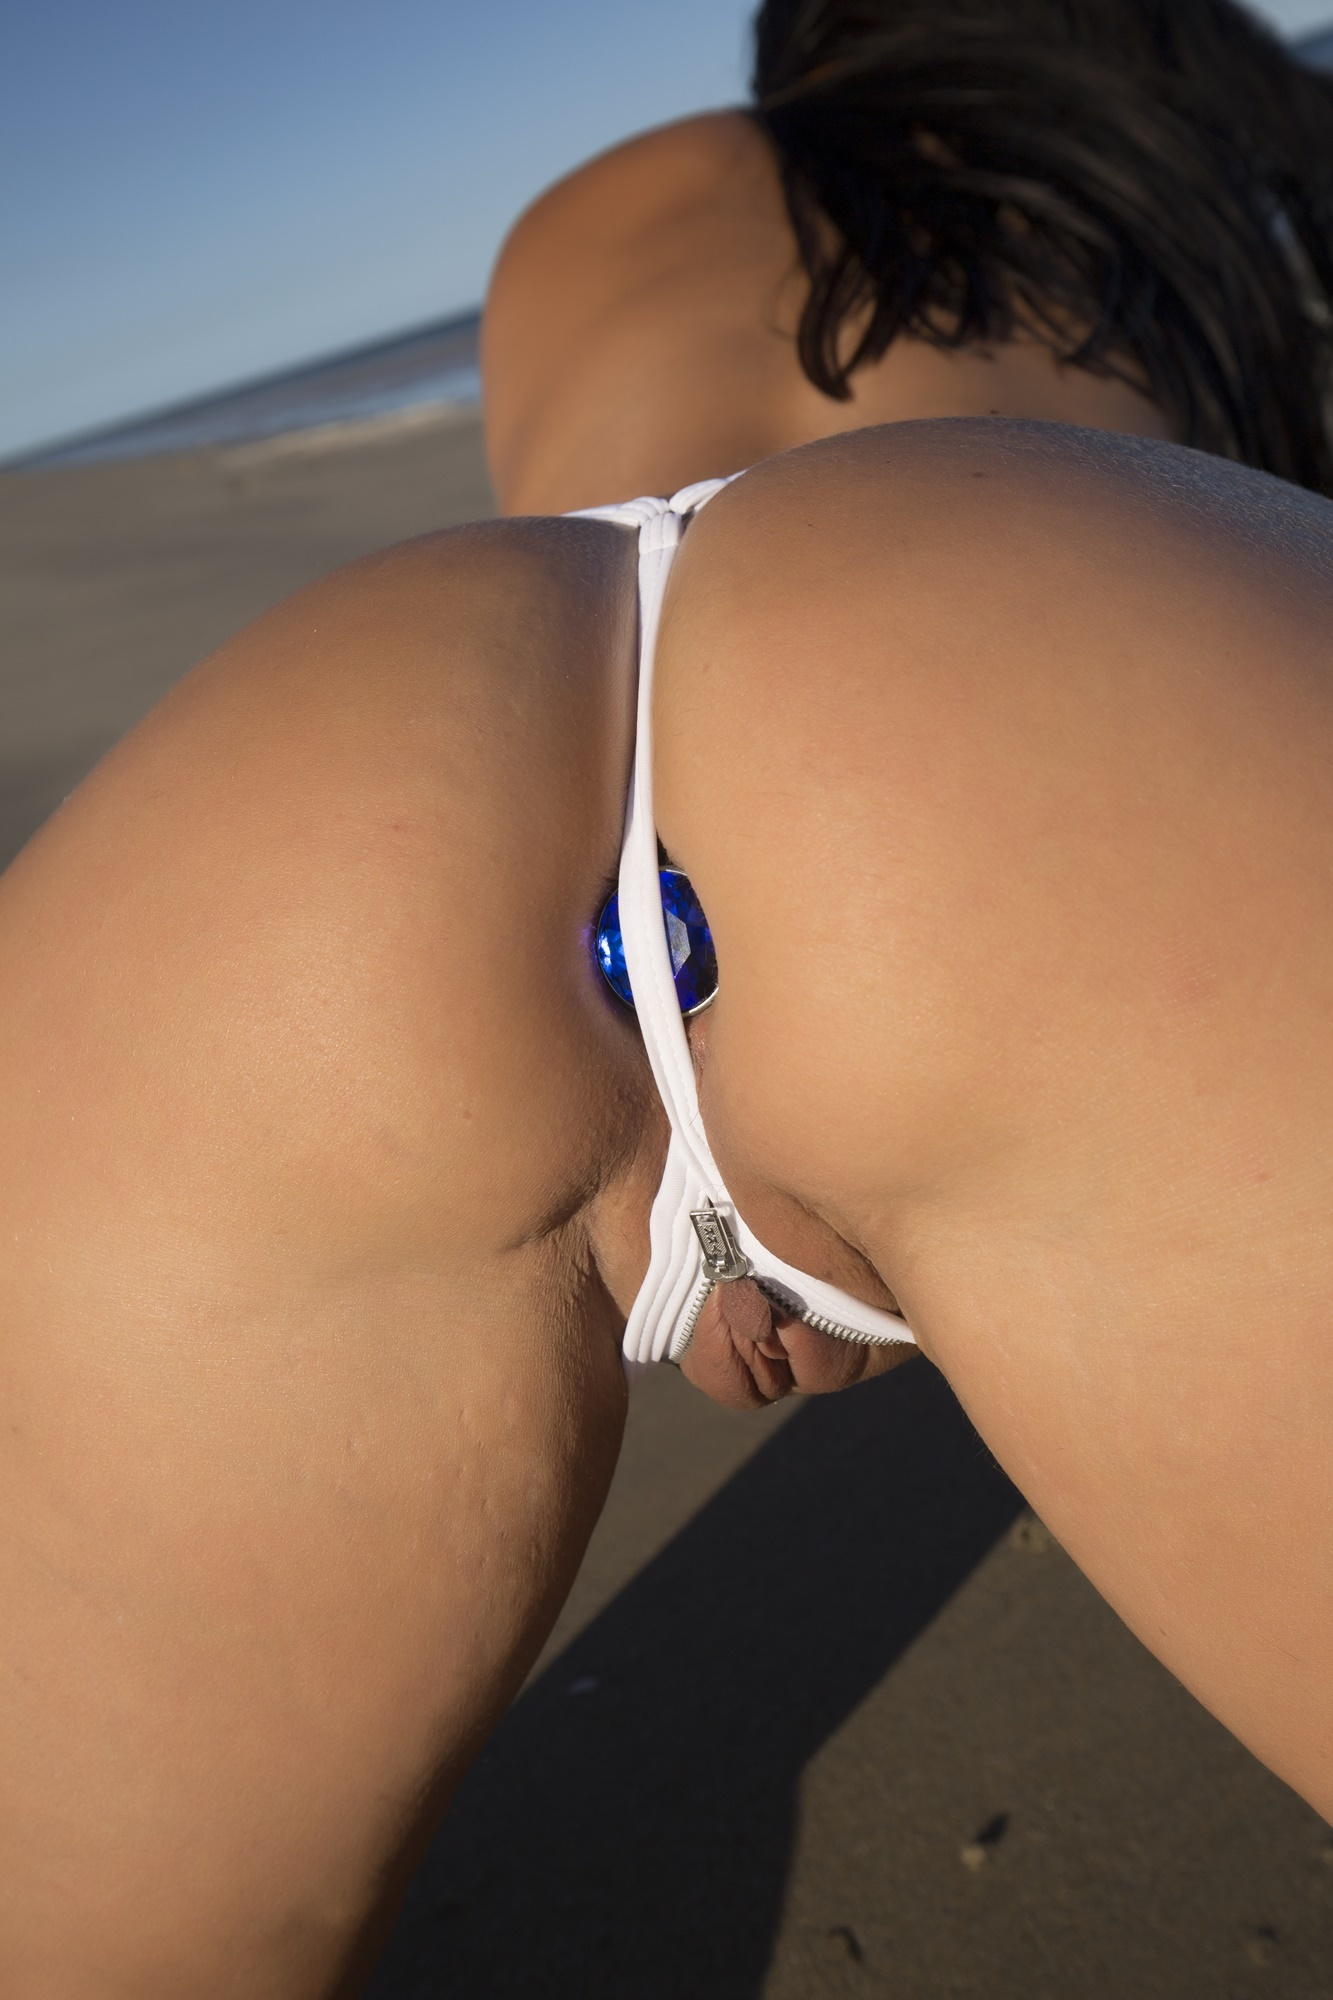 Butt Plug At The Beach